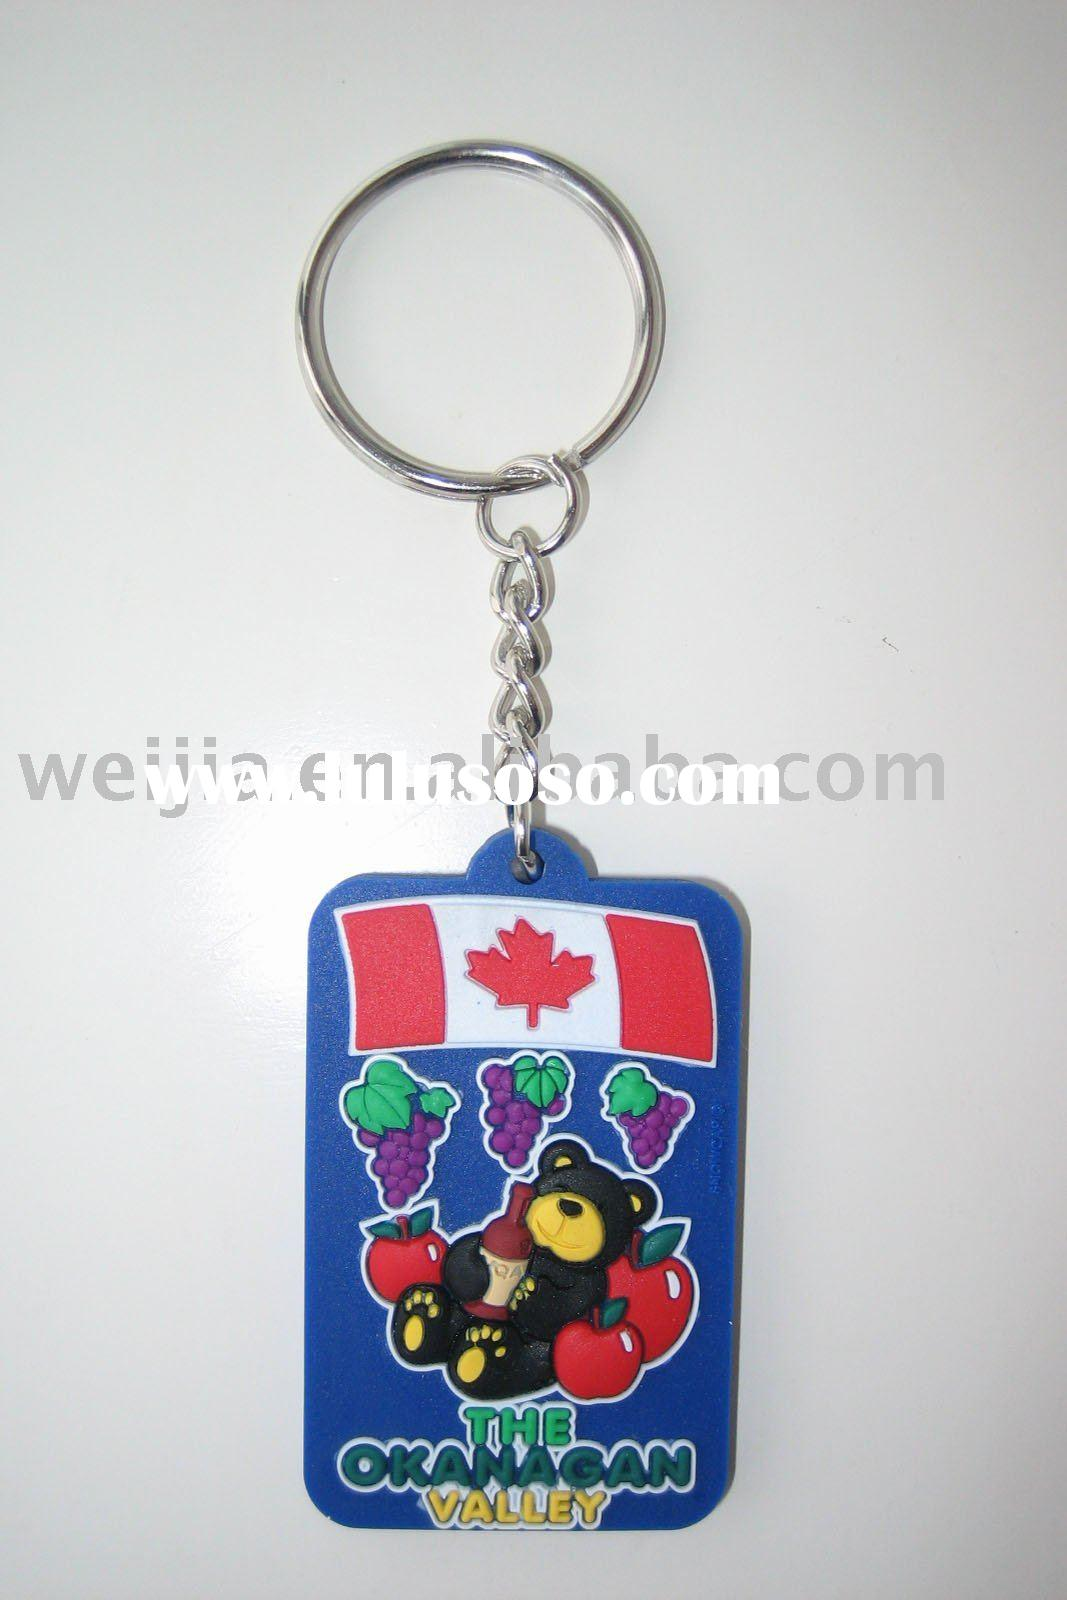 plastic key holder,key chain,rubber keychain